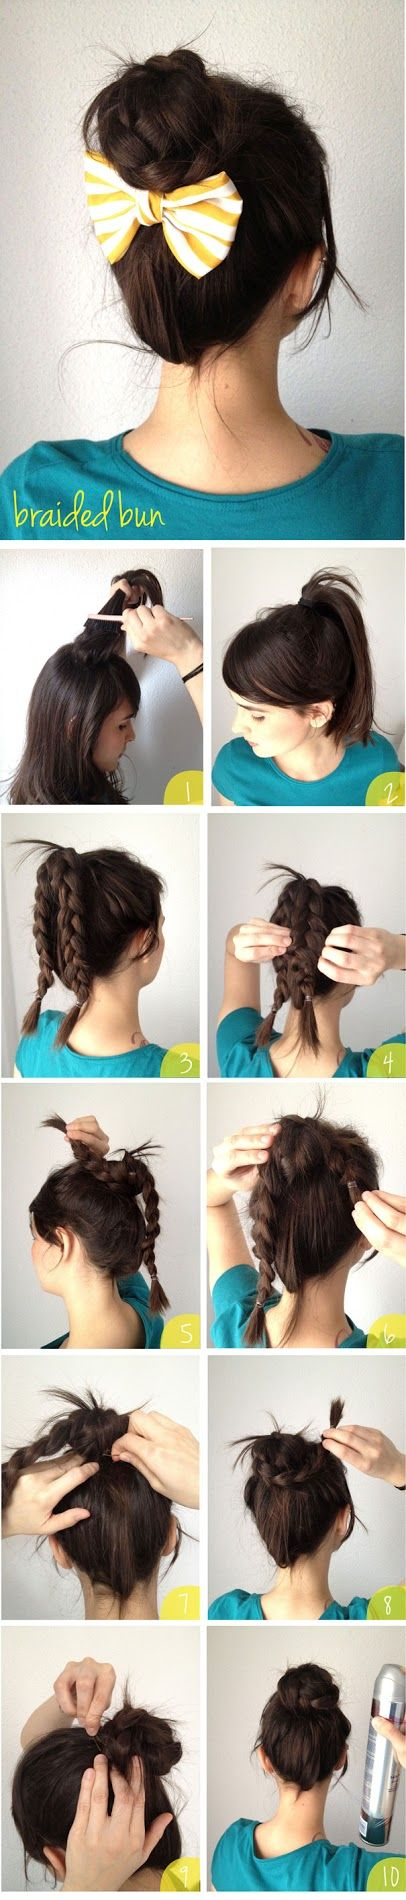 How To Make Braided Bun | hairstyles tutorial